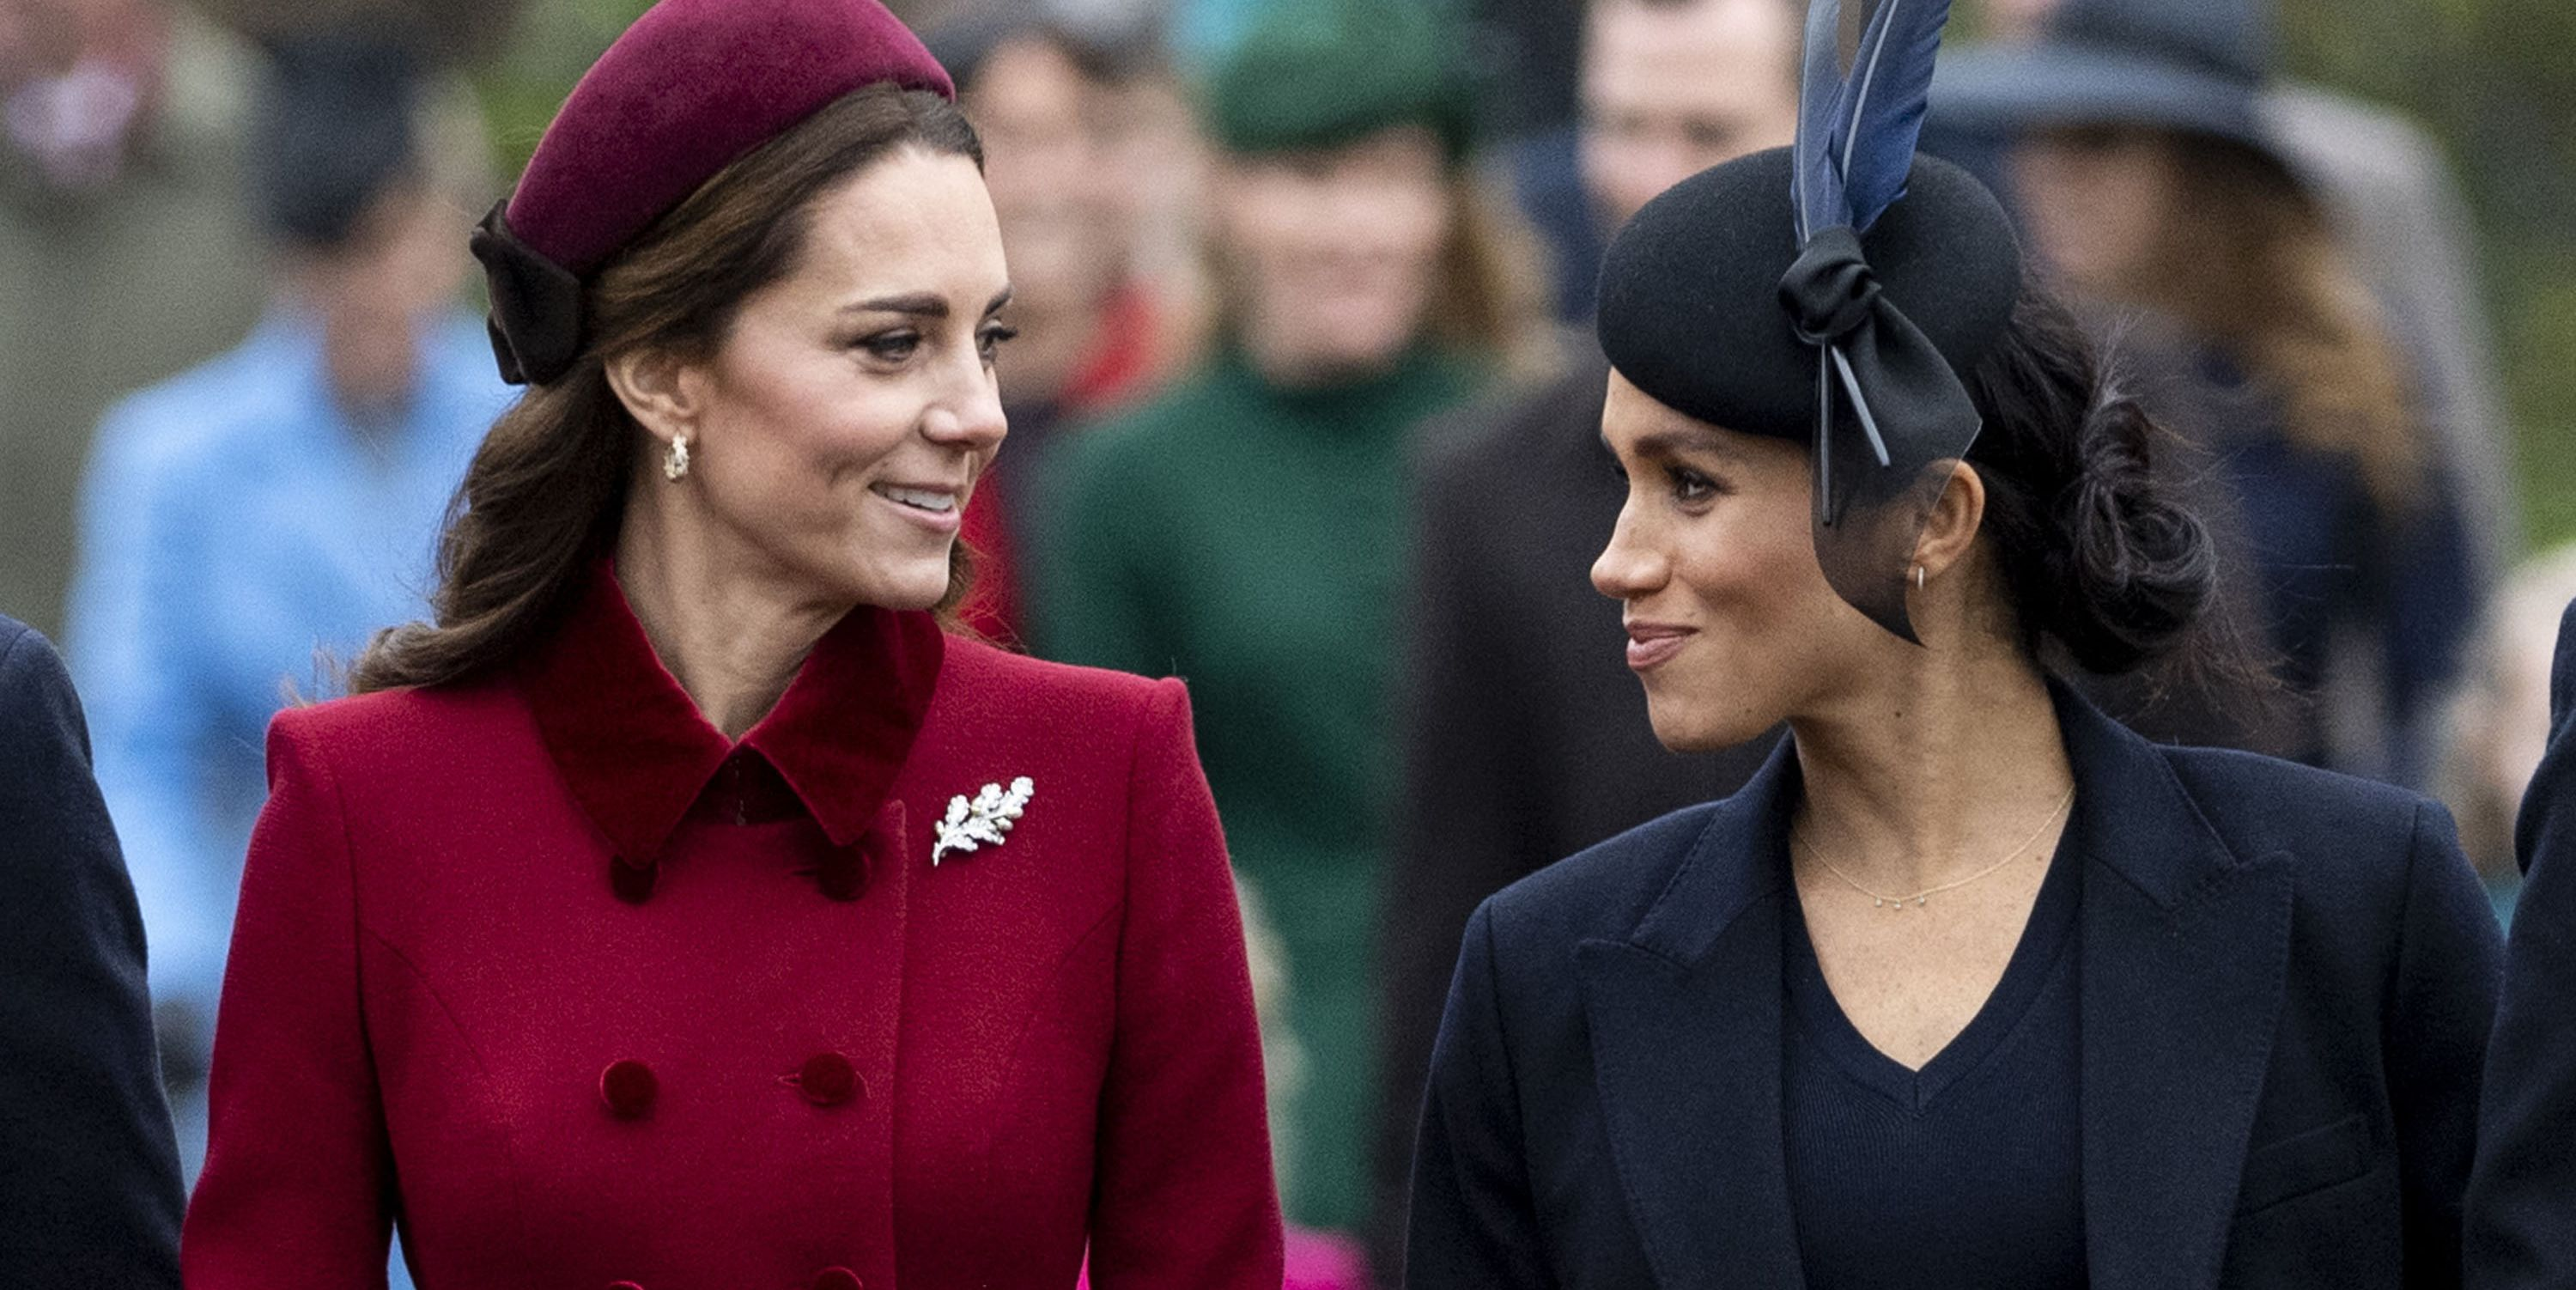 Kate-Middleton-Meghan-Markle-natale